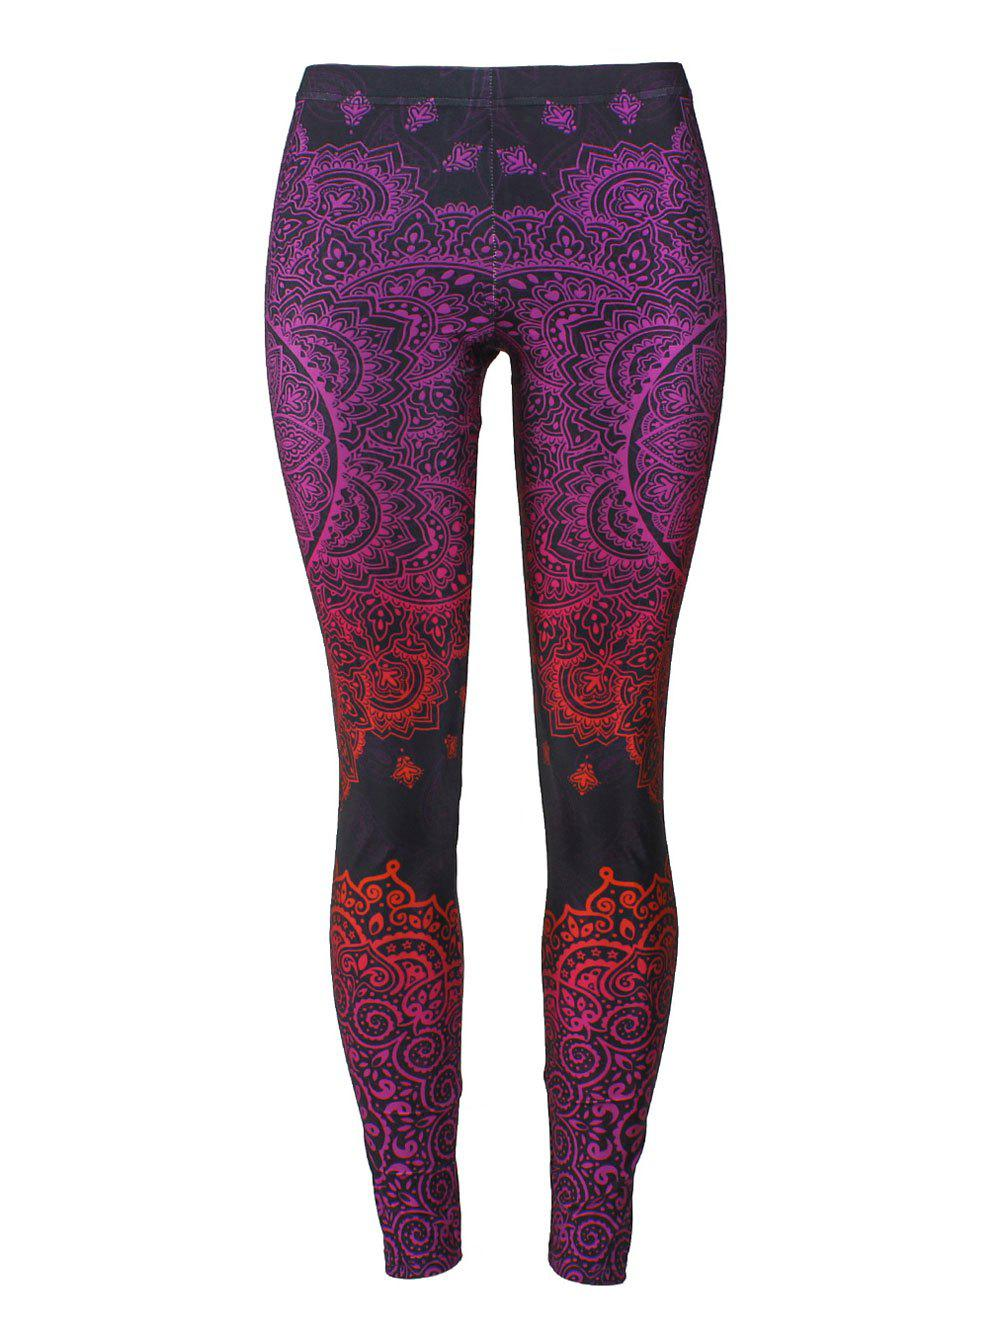 Bohemian Print Fitted LeggingsWOMEN<br><br>Size: XL; Color: COLORMIX; Style: Fashion; Material: Polyester; Waist Type: Mid; Pattern Type: Print; Weight: 0.2300kg; Package Contents: 1 x Leggings;